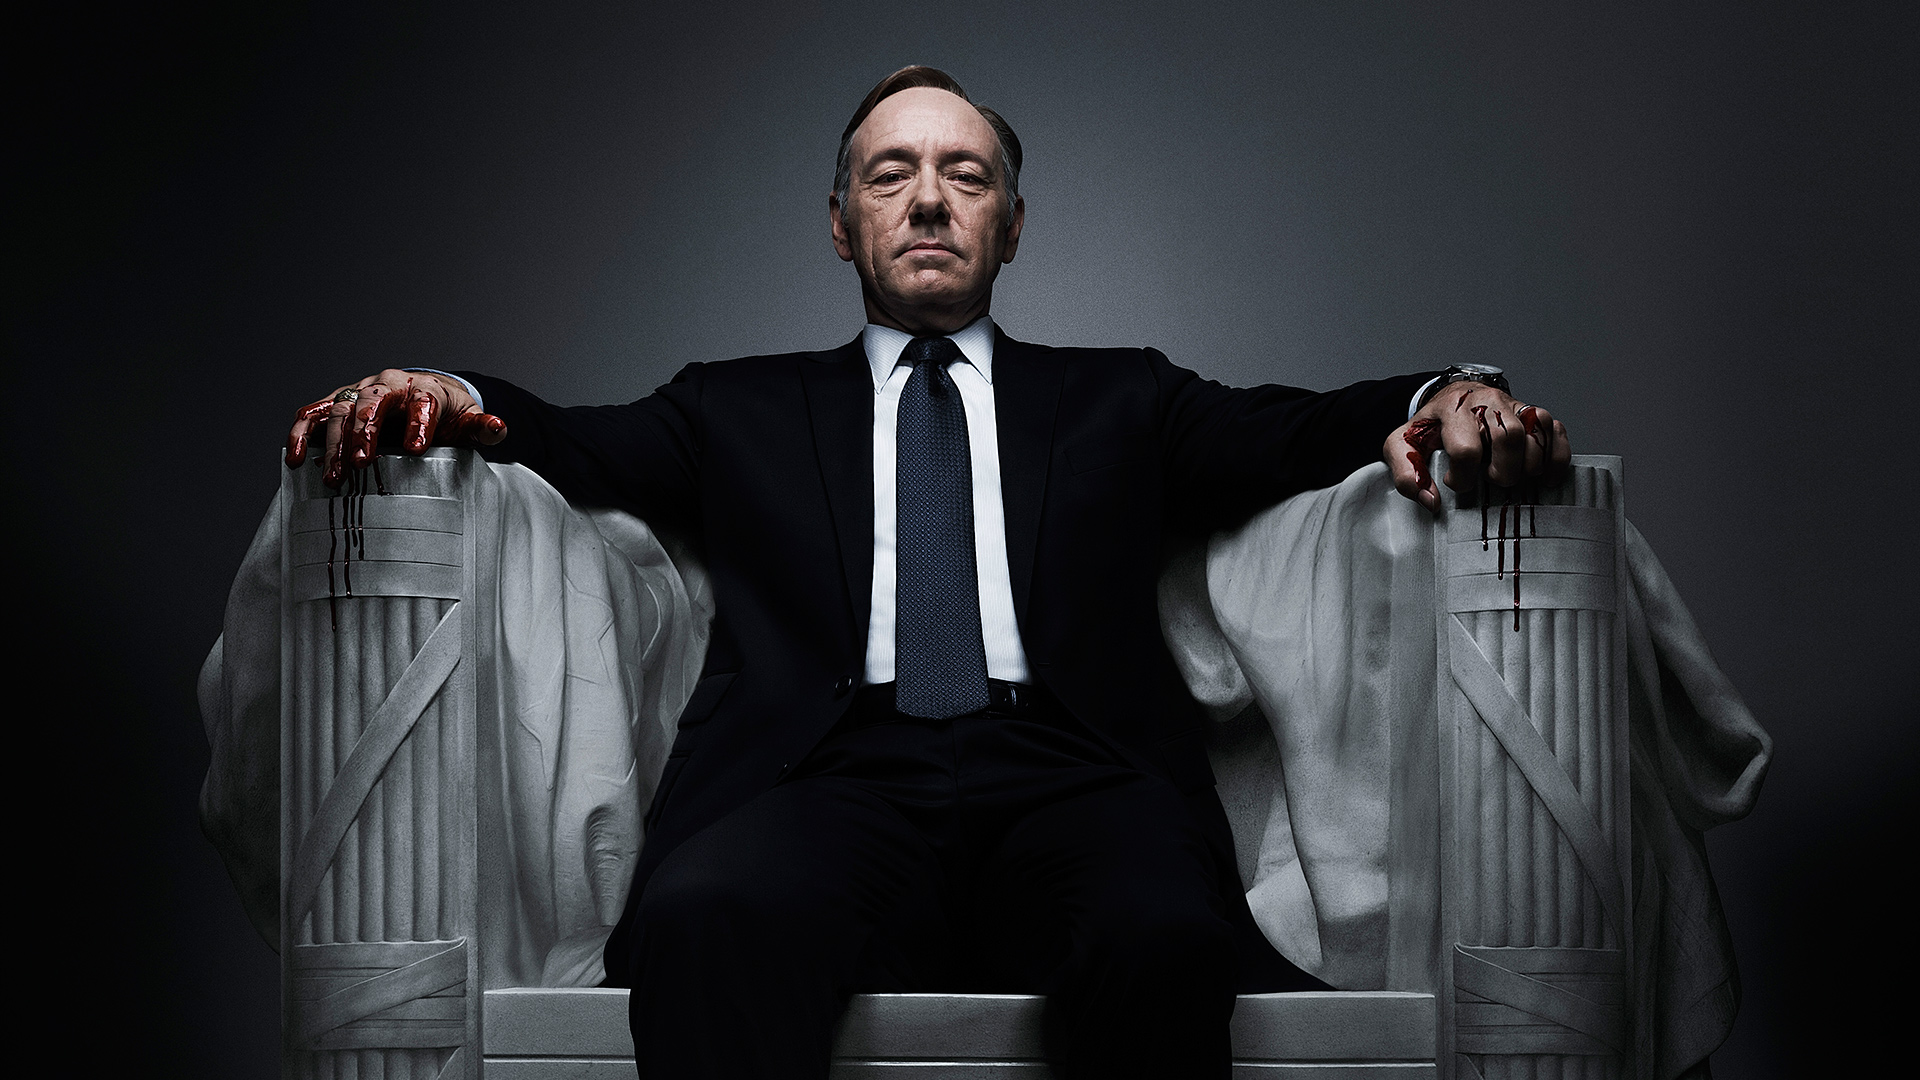 Photo of House of Cards Season 5: What All Can We Expect?